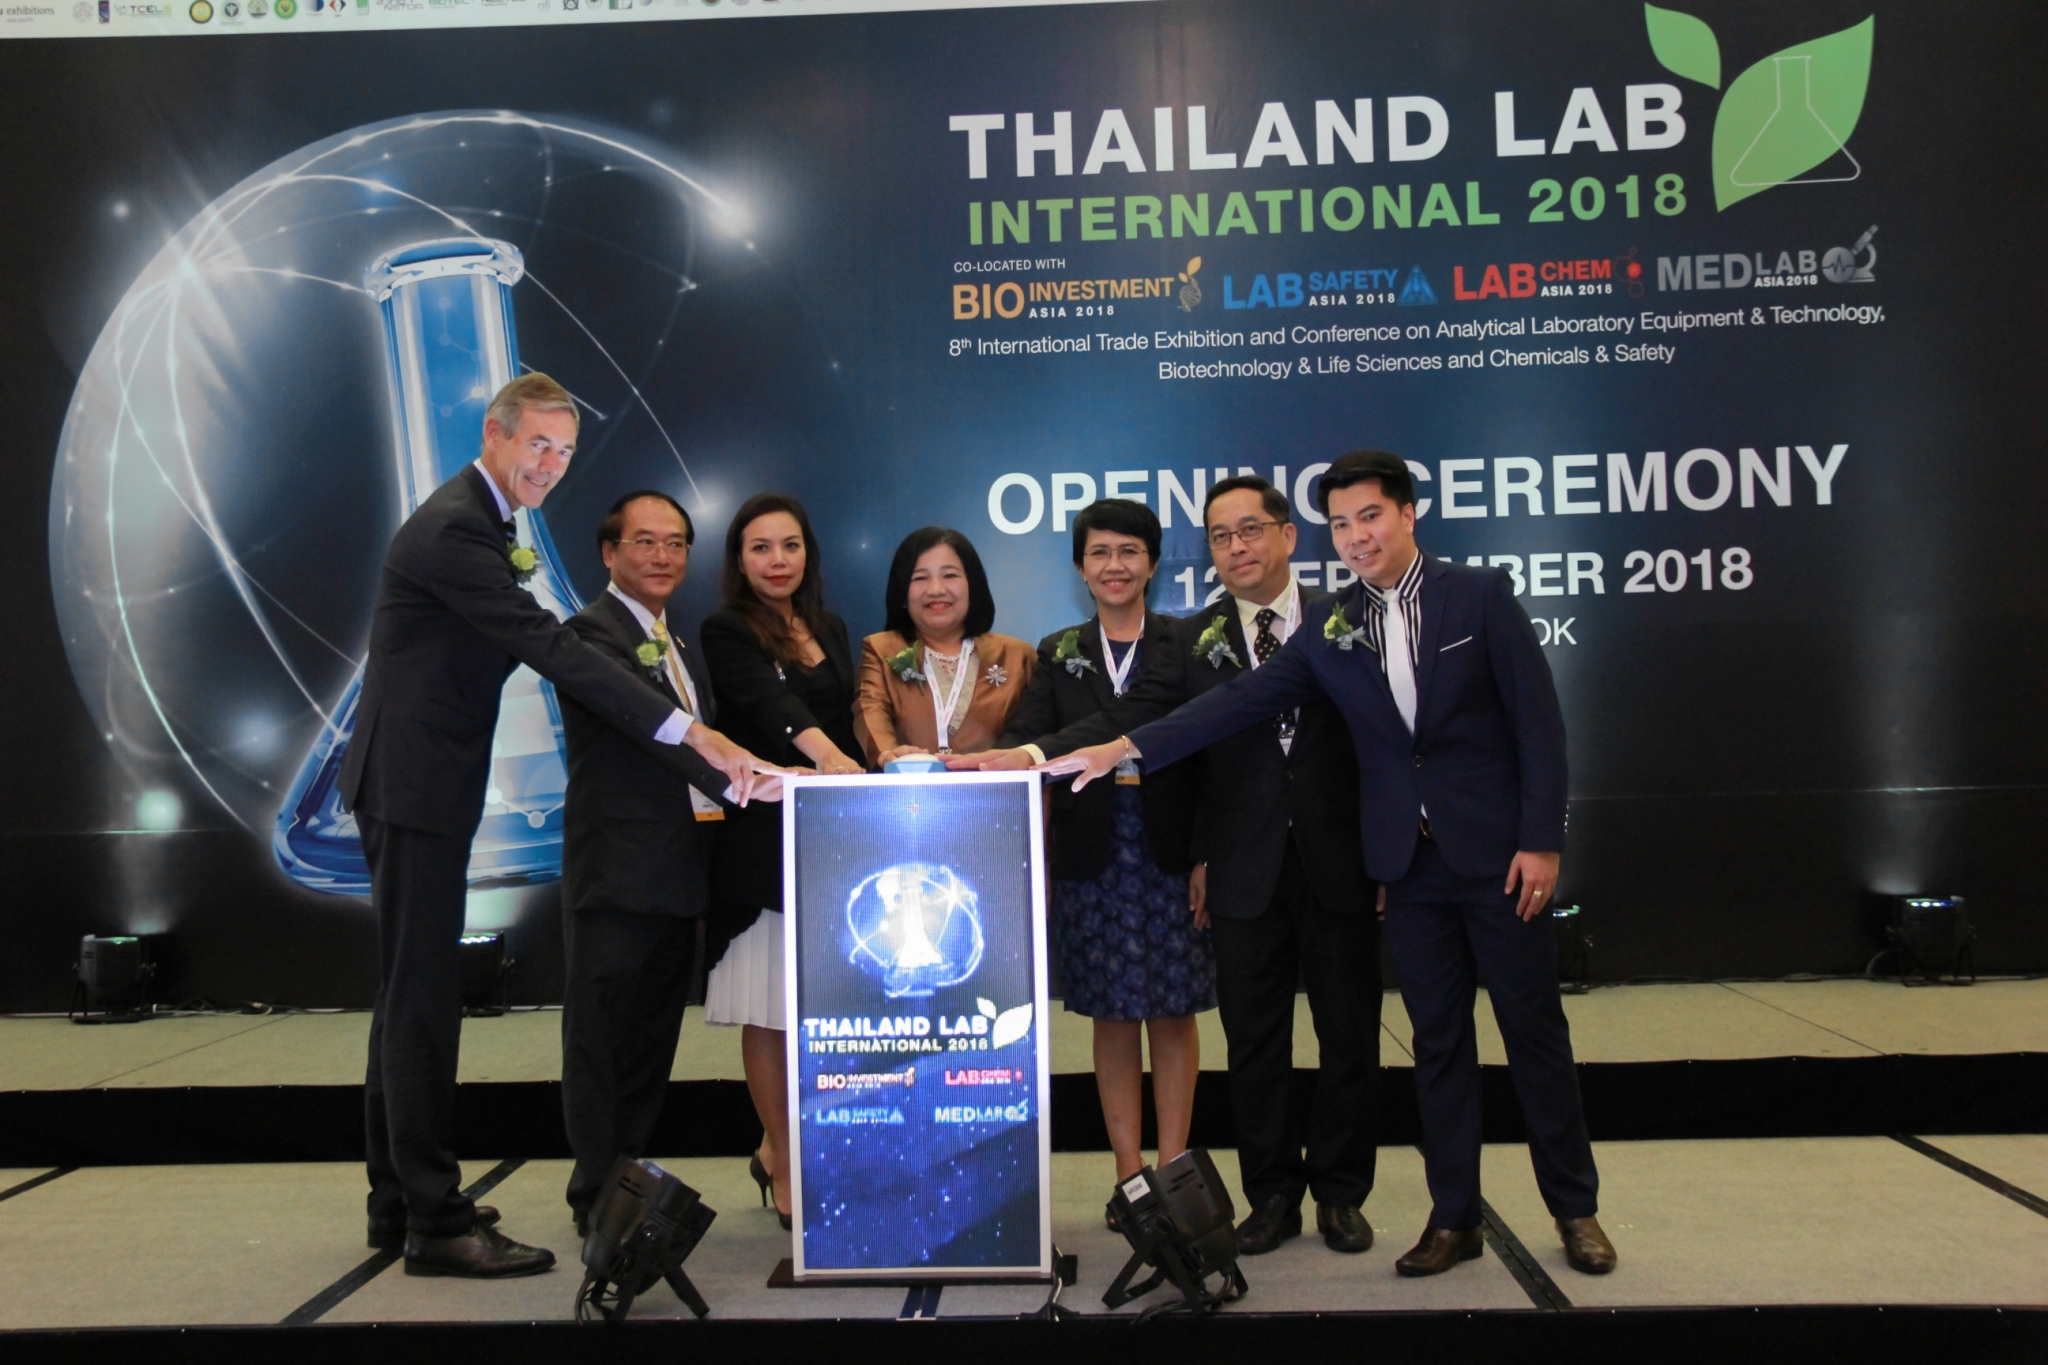 Thailand LAB INTERNATIONAL...